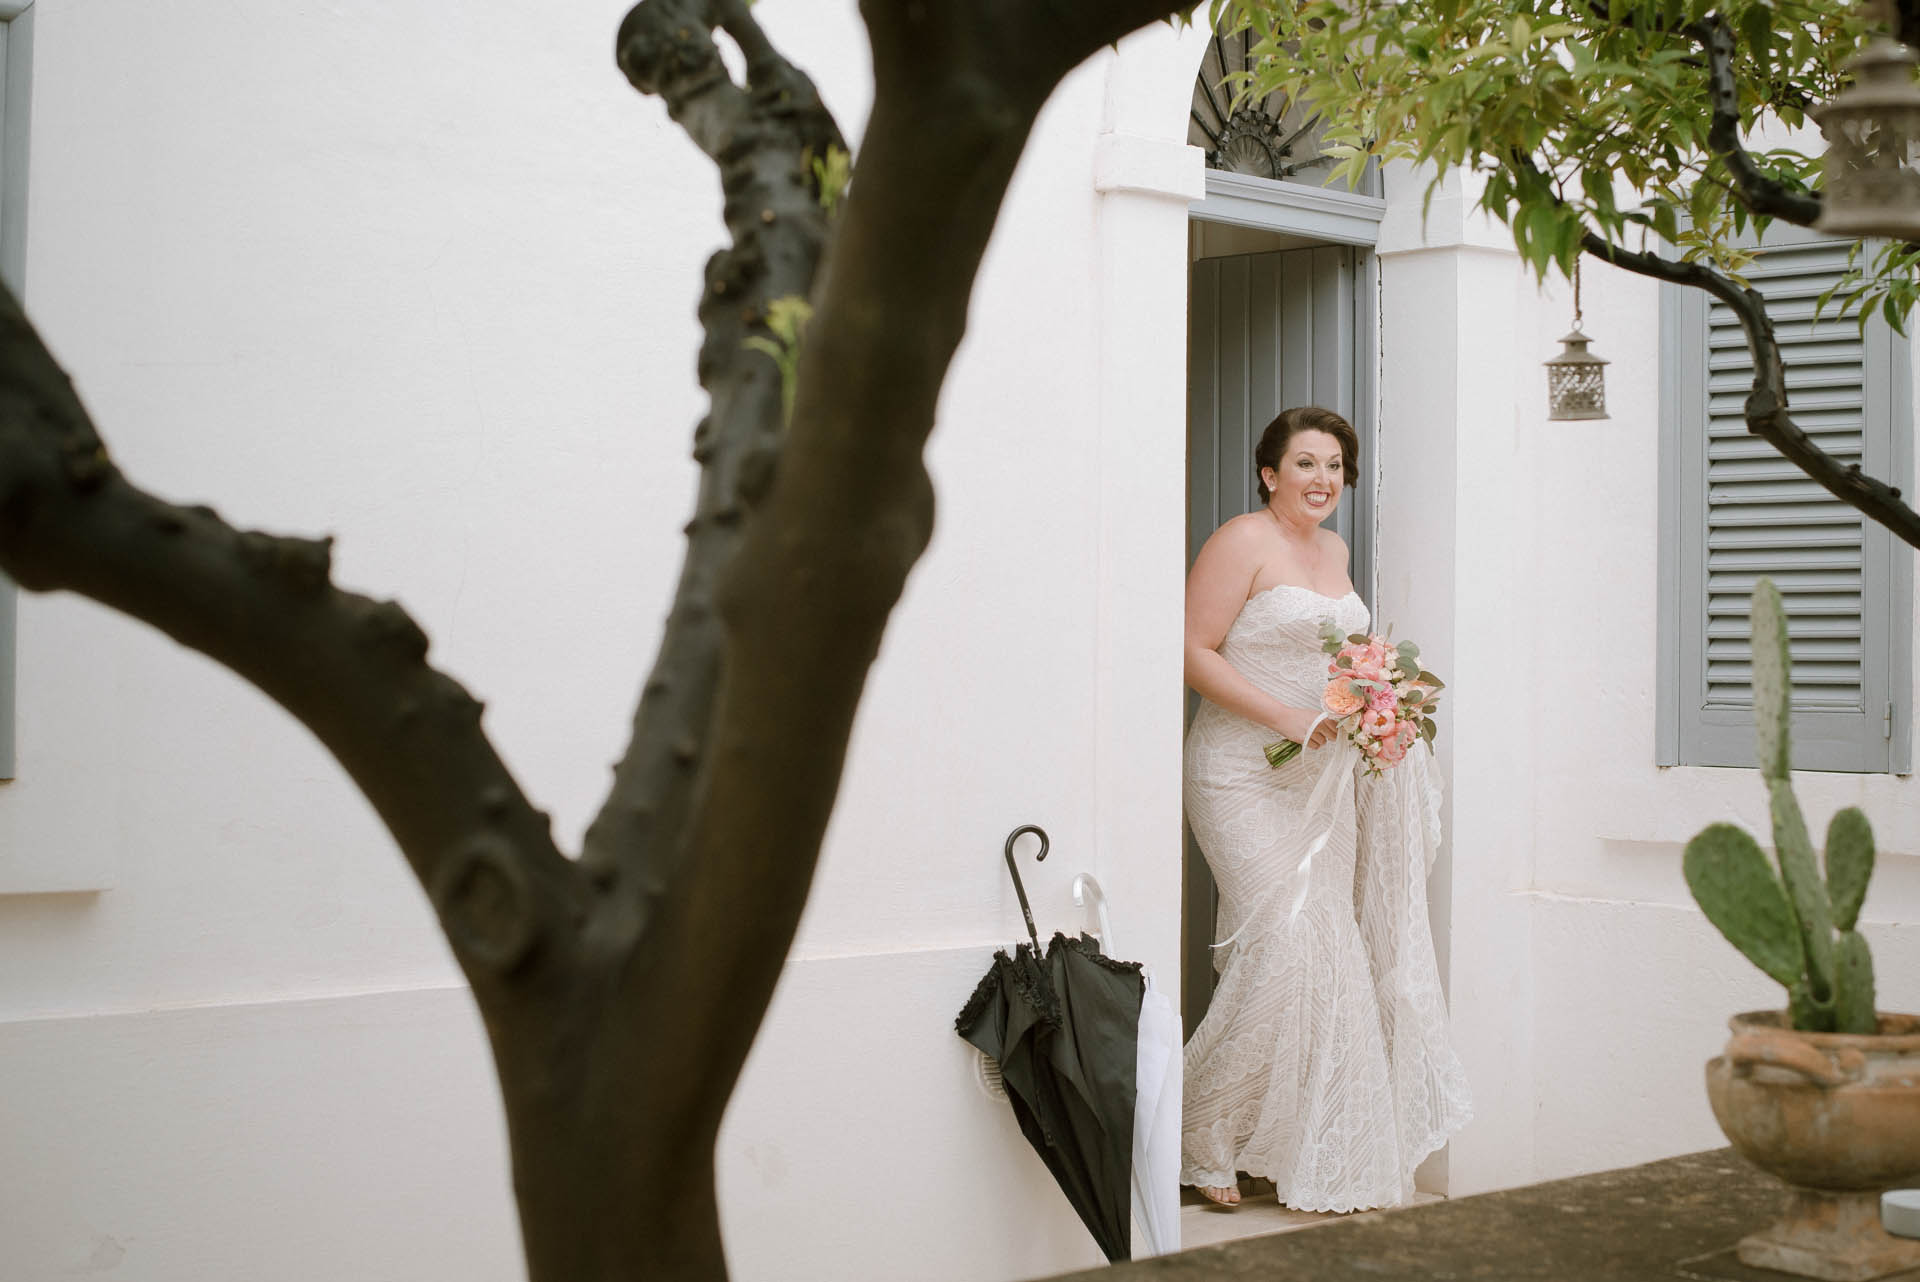 Wedding Photographer matrimonio puglia